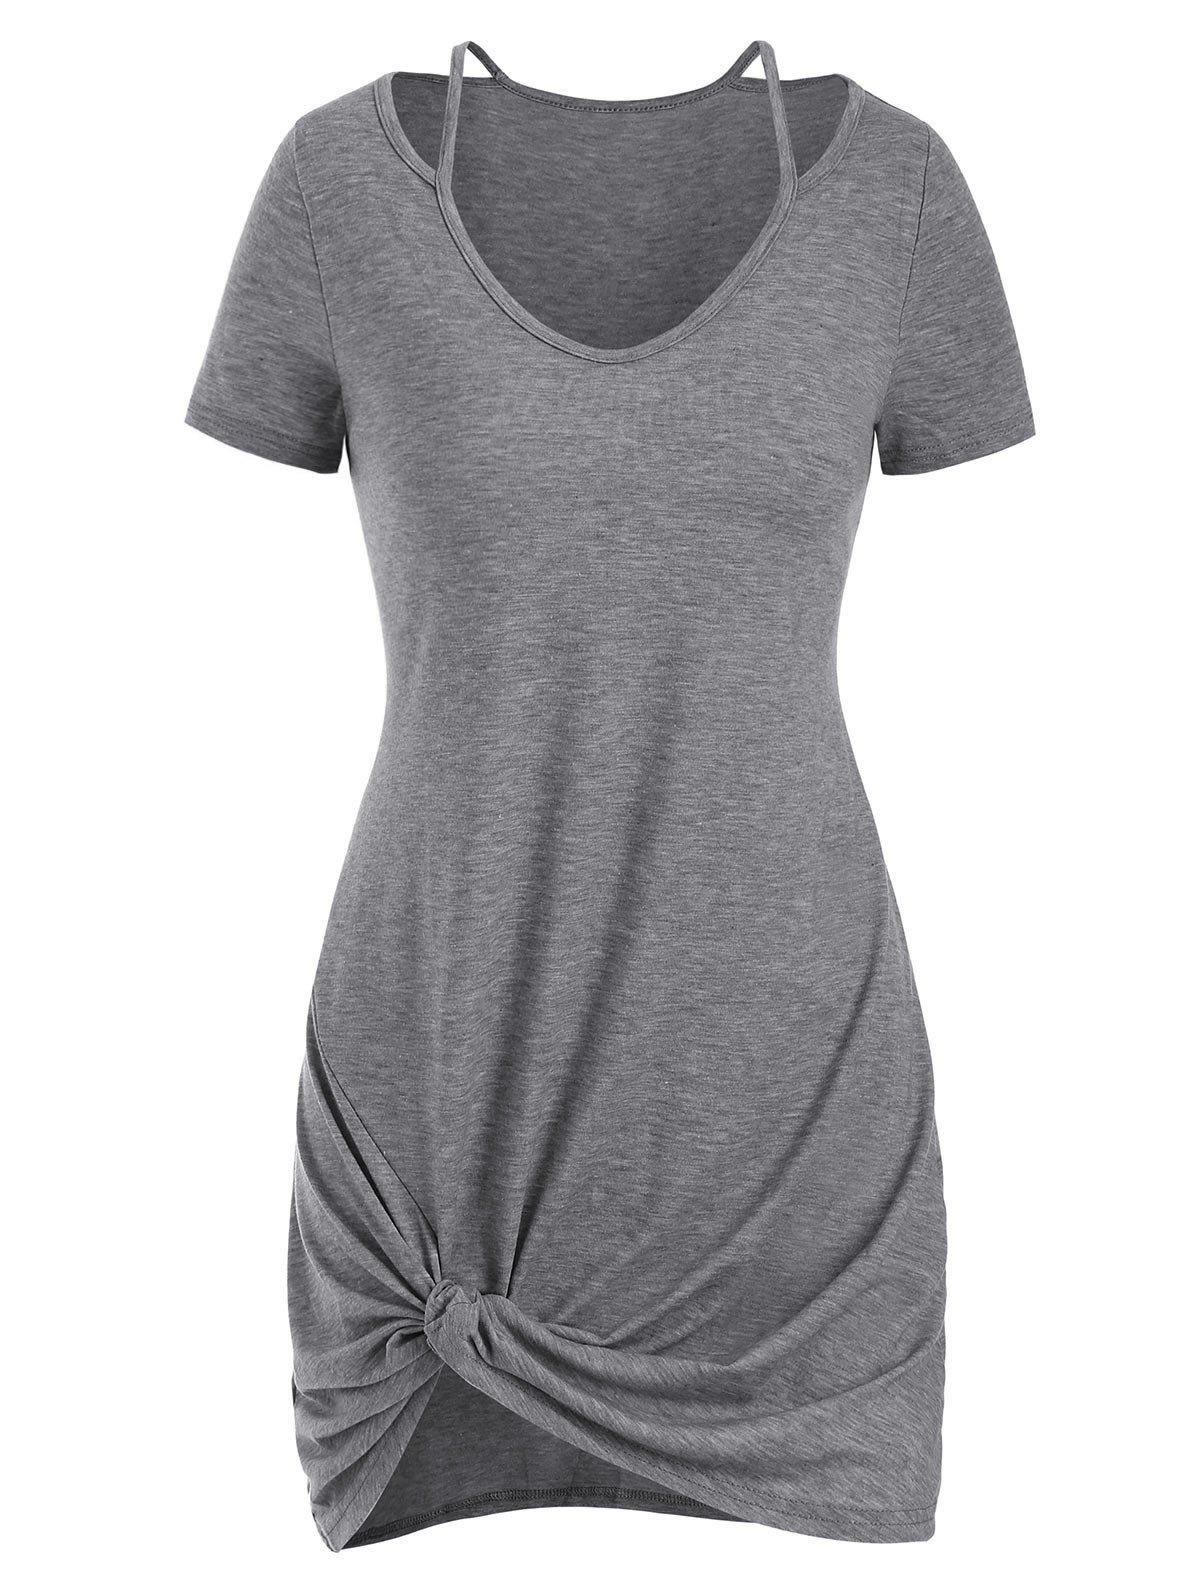 Cut Out Twisted Mini Dress - LIGHT GRAY XL